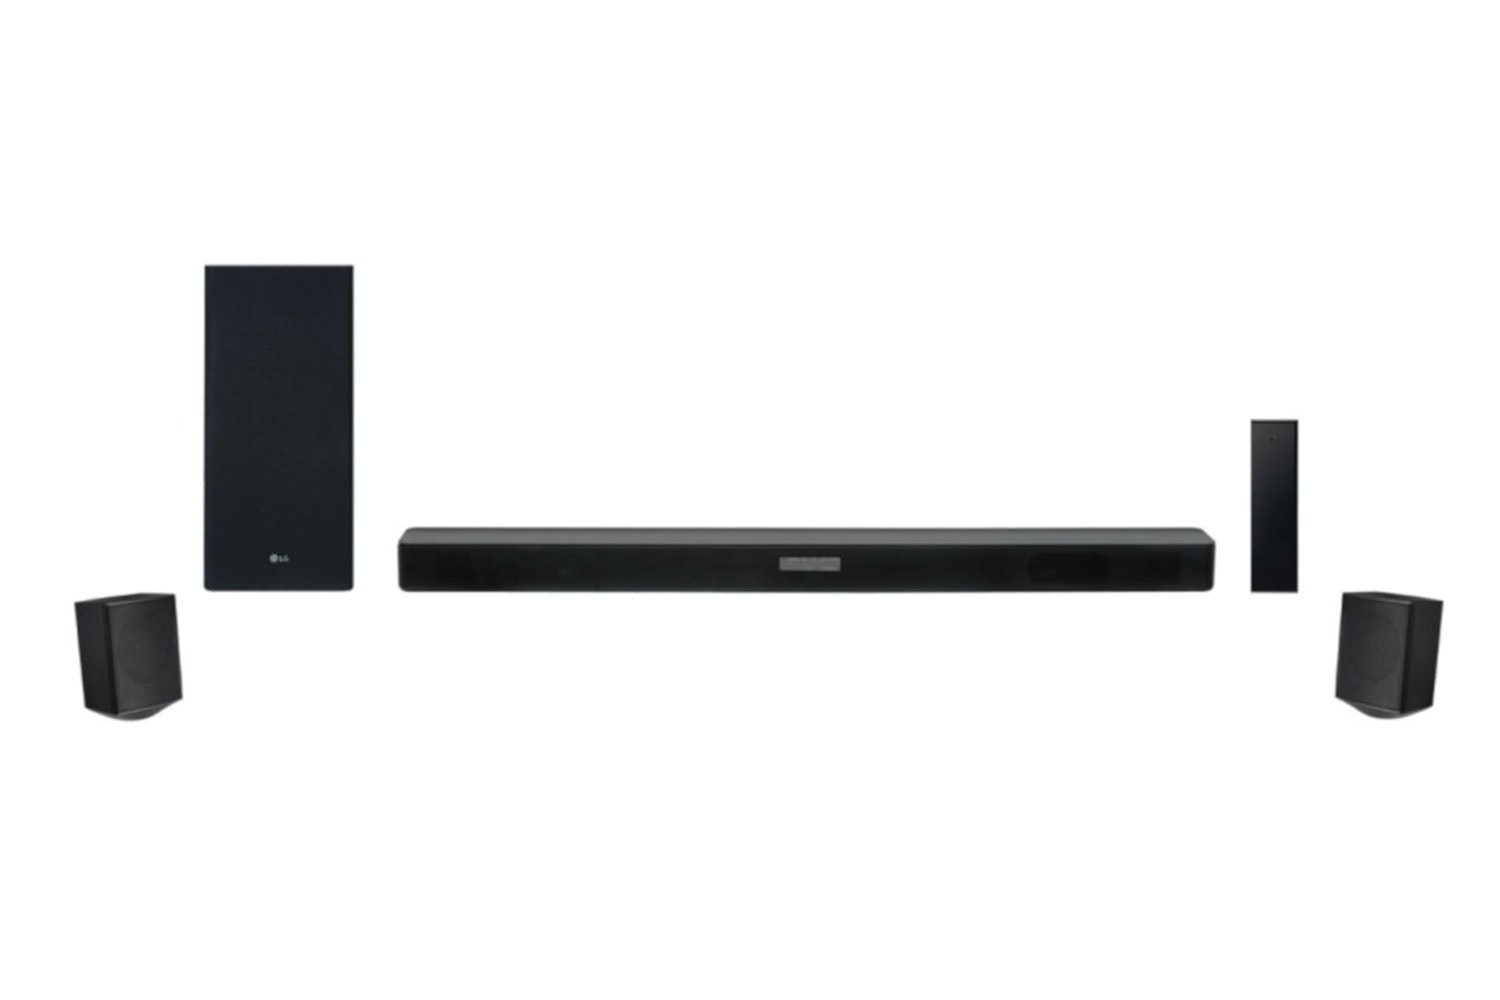 LG 4.1ch High Resolution Audio Soundbar